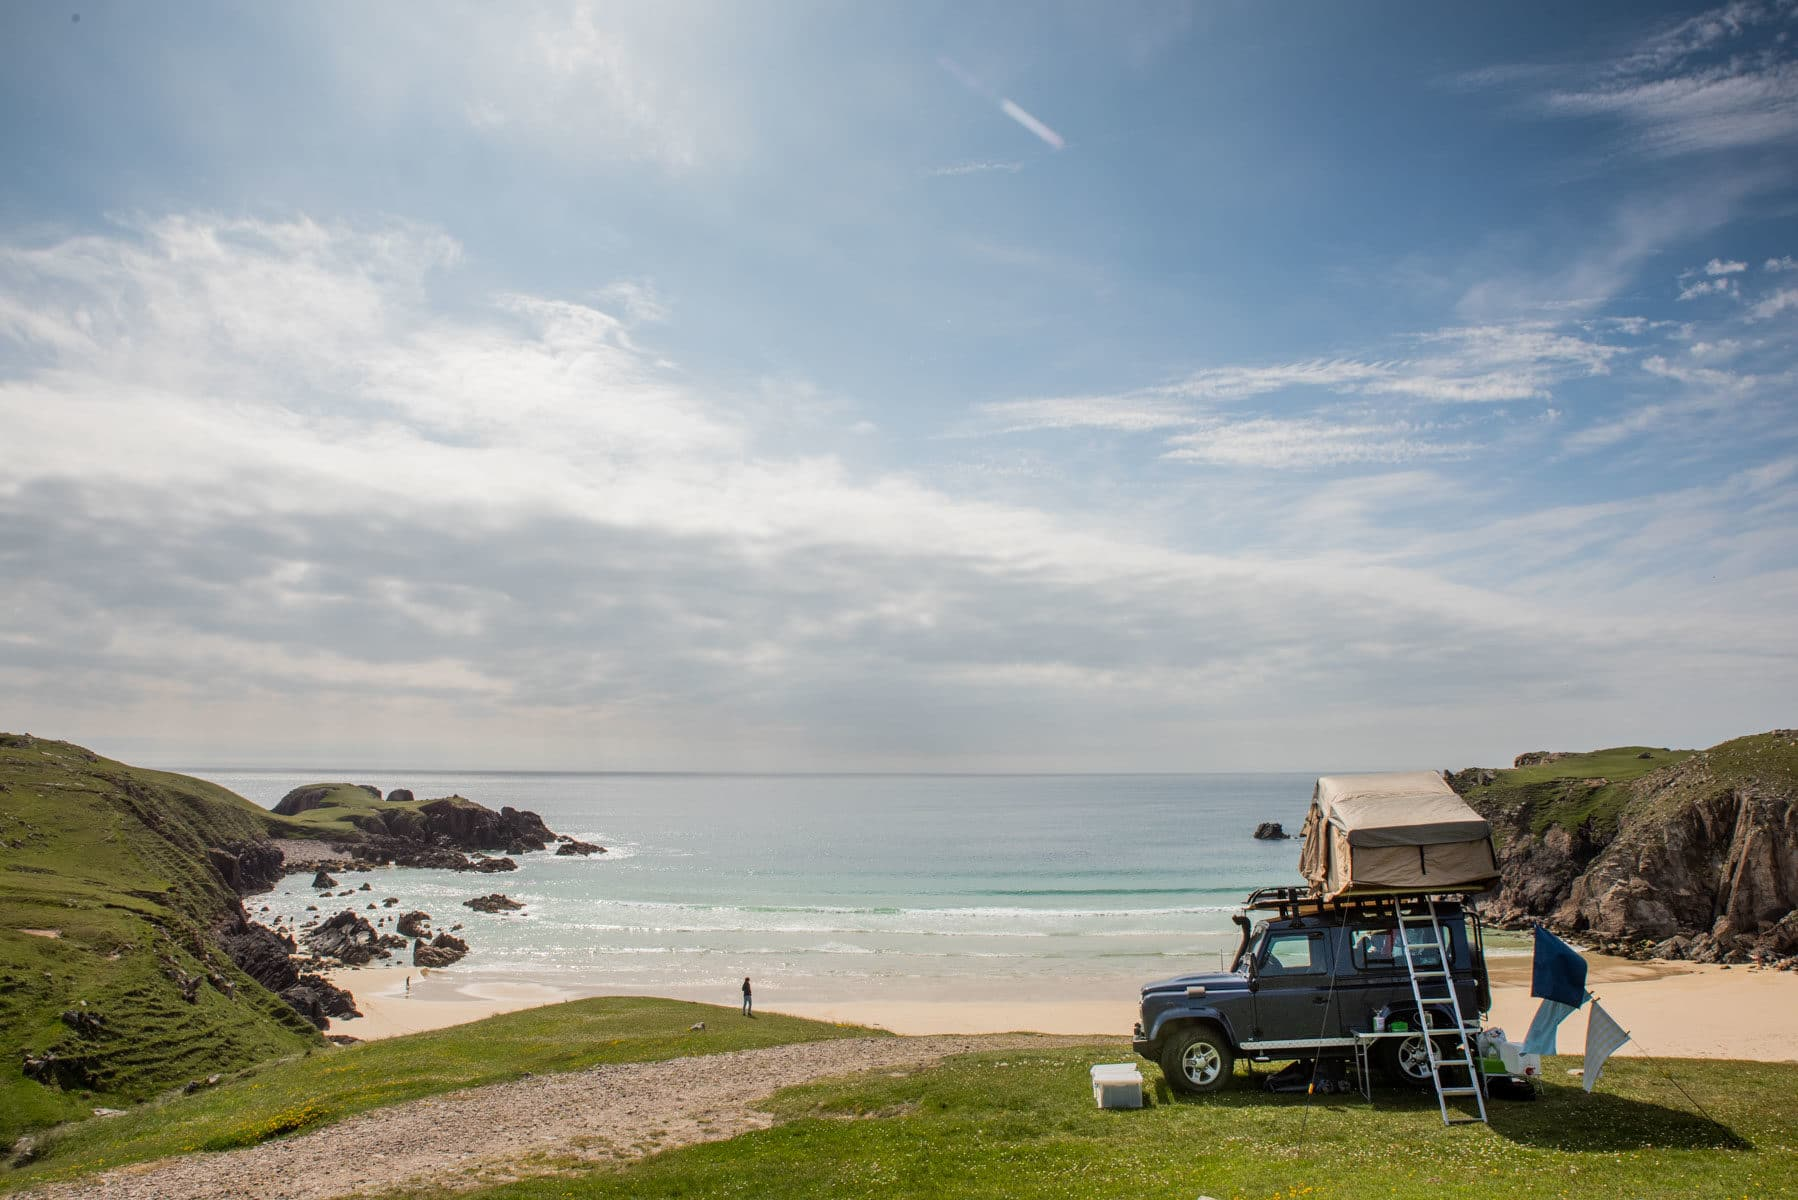 Camping on the beach in Scotland